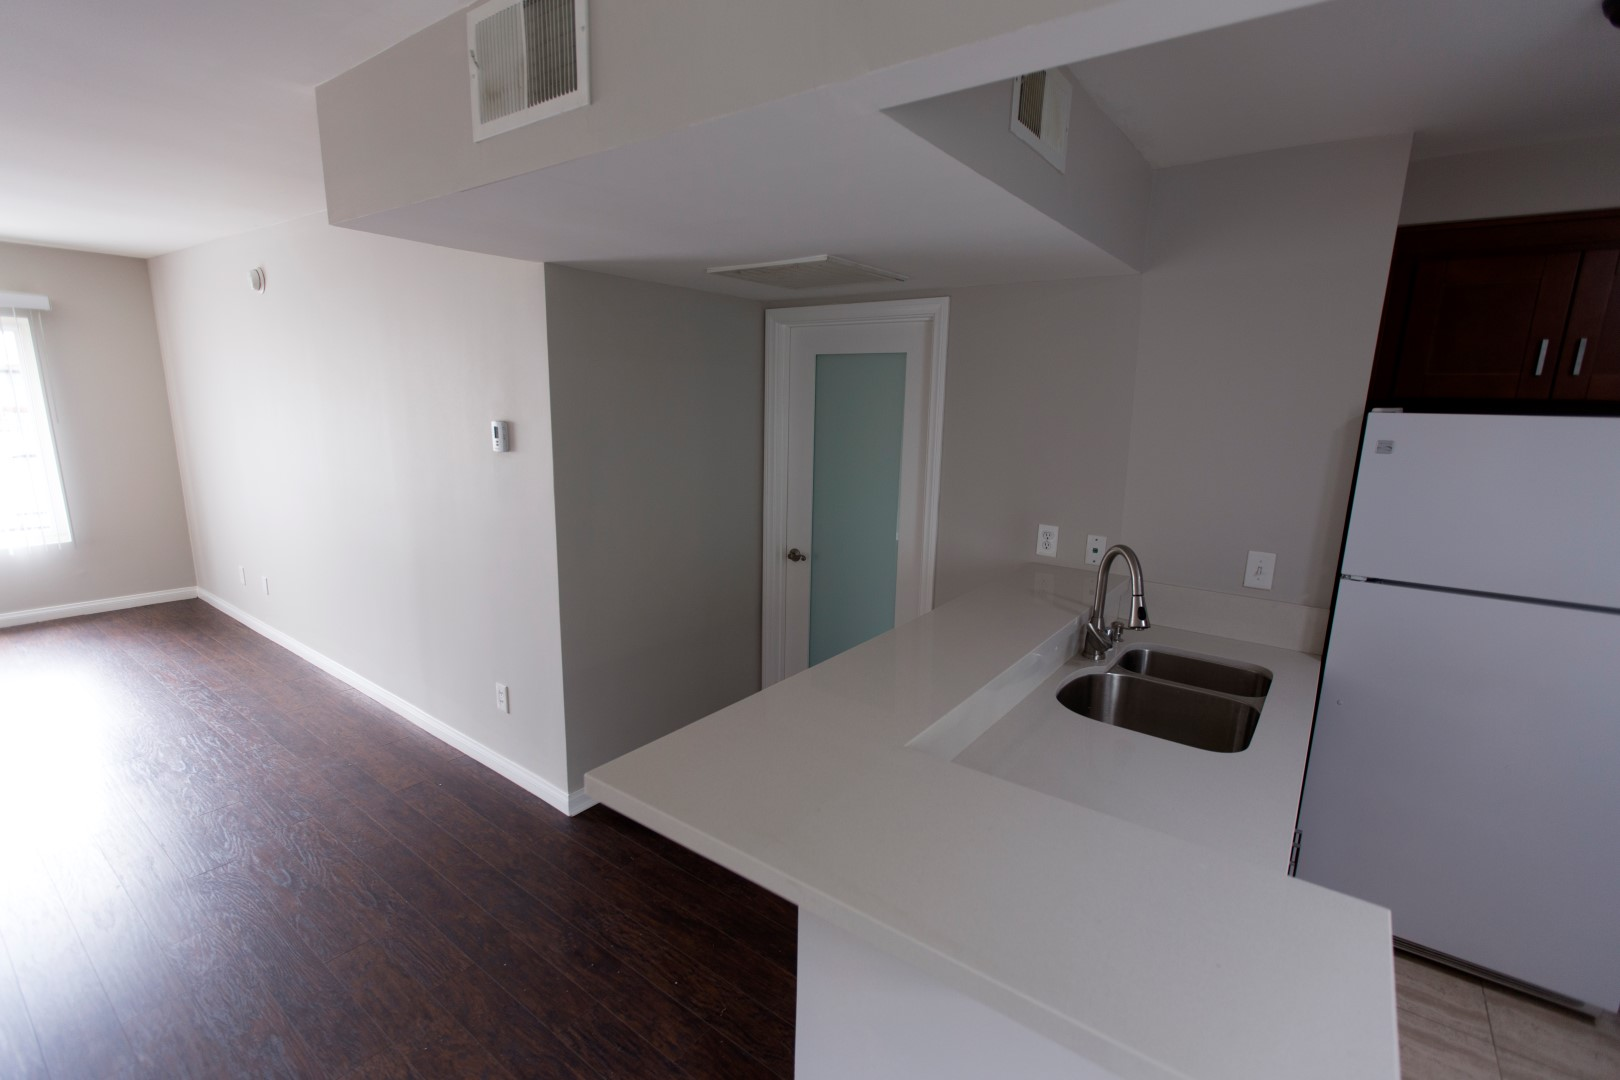 •      Semi furnished stove, microwave, fridge, washer, and dryer.  •	Newly remodeled.  •	Wooden floors.  •	Small Pets are okay.  •	Neighbors are professionals.  •	Gated with remote control.  •	high-speed internet access and smoke-free options.